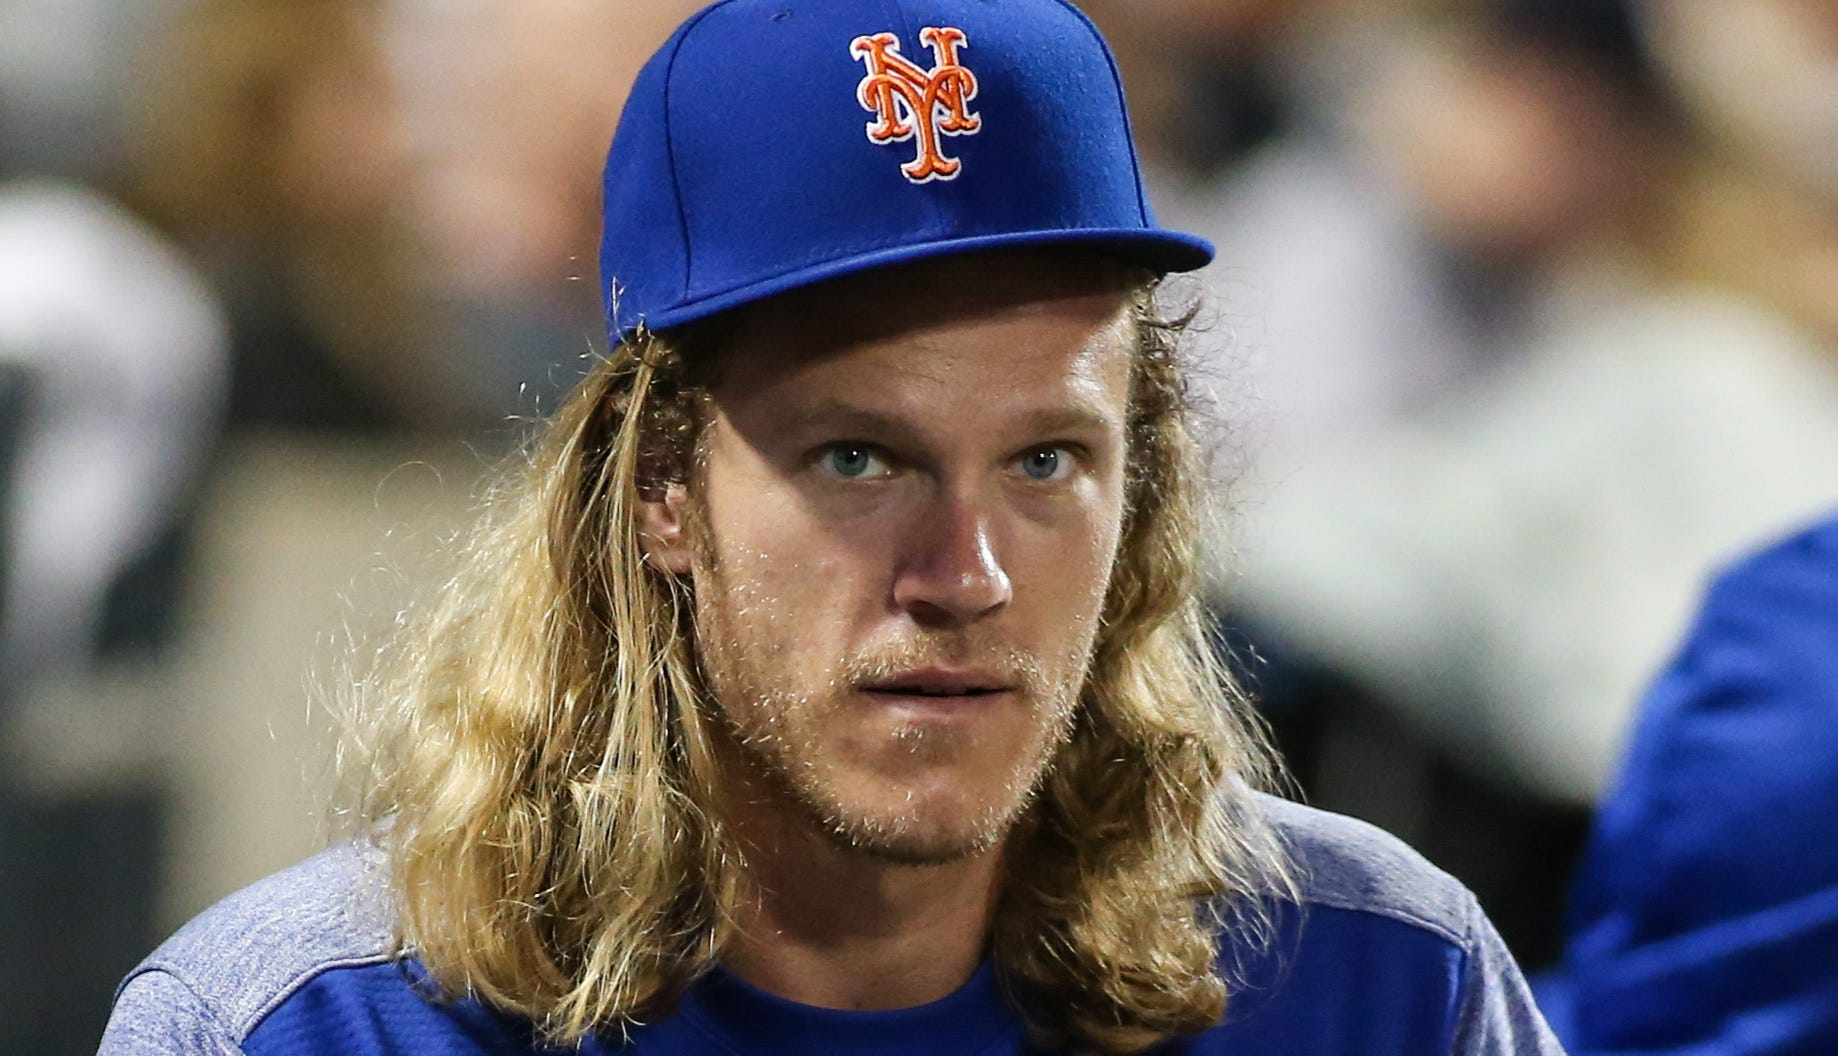 Noah Syndergaard watches the action at Citi Field.